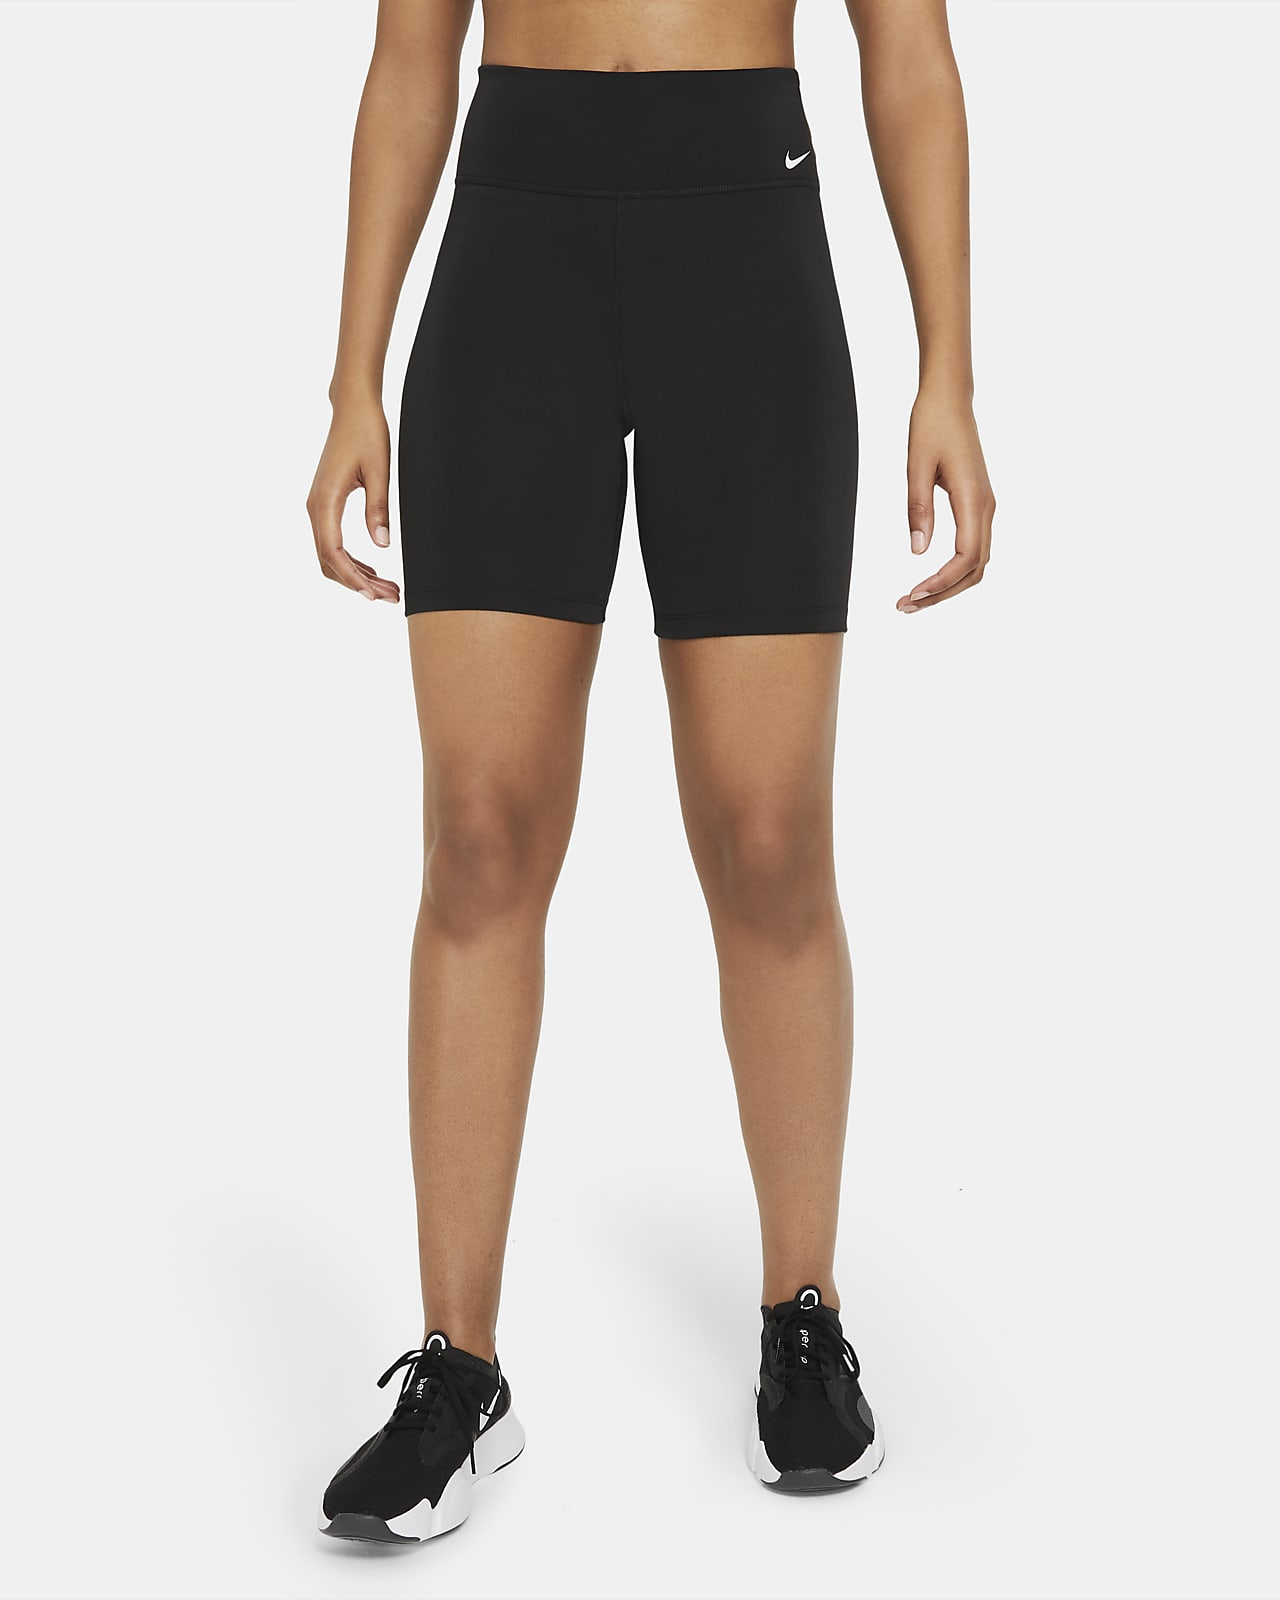 Nike One Women's Mid-Rise 18cm (approx.) Bike Shorts